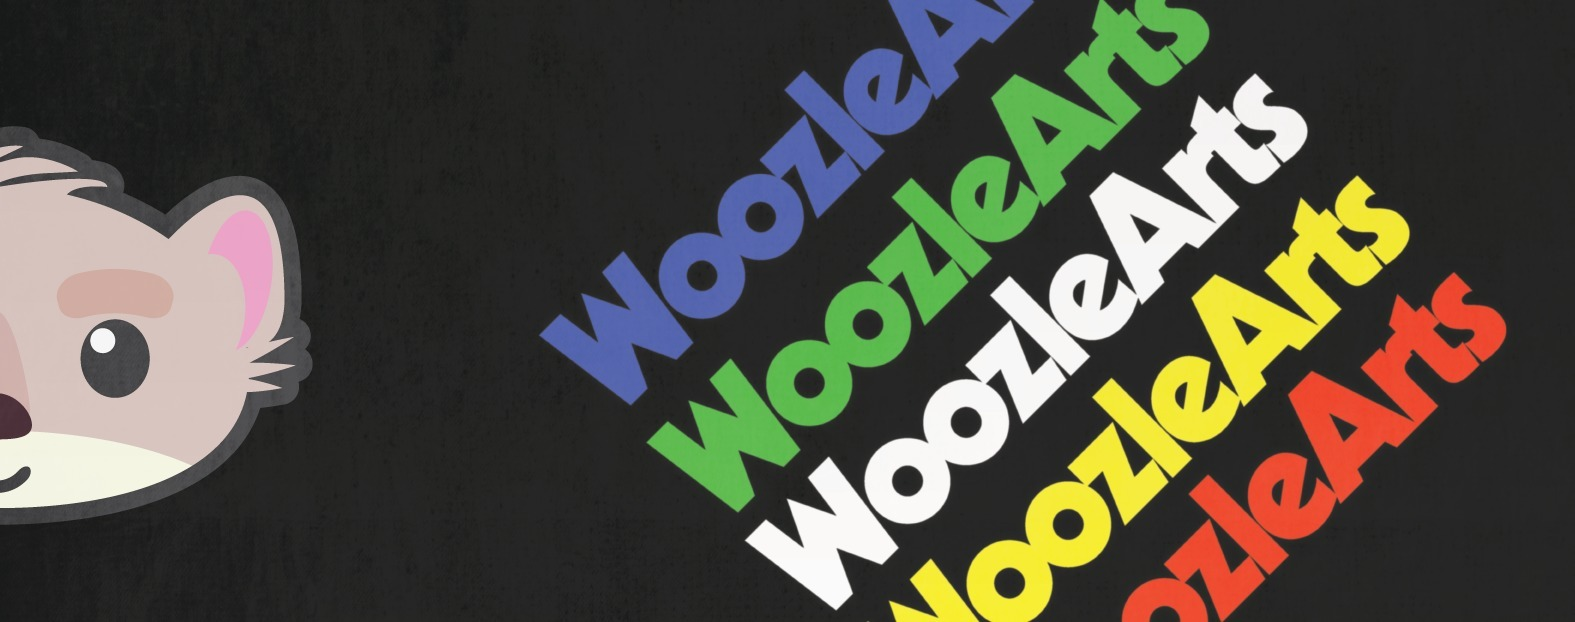 Woozle Arts (@woozleart) Cover Image